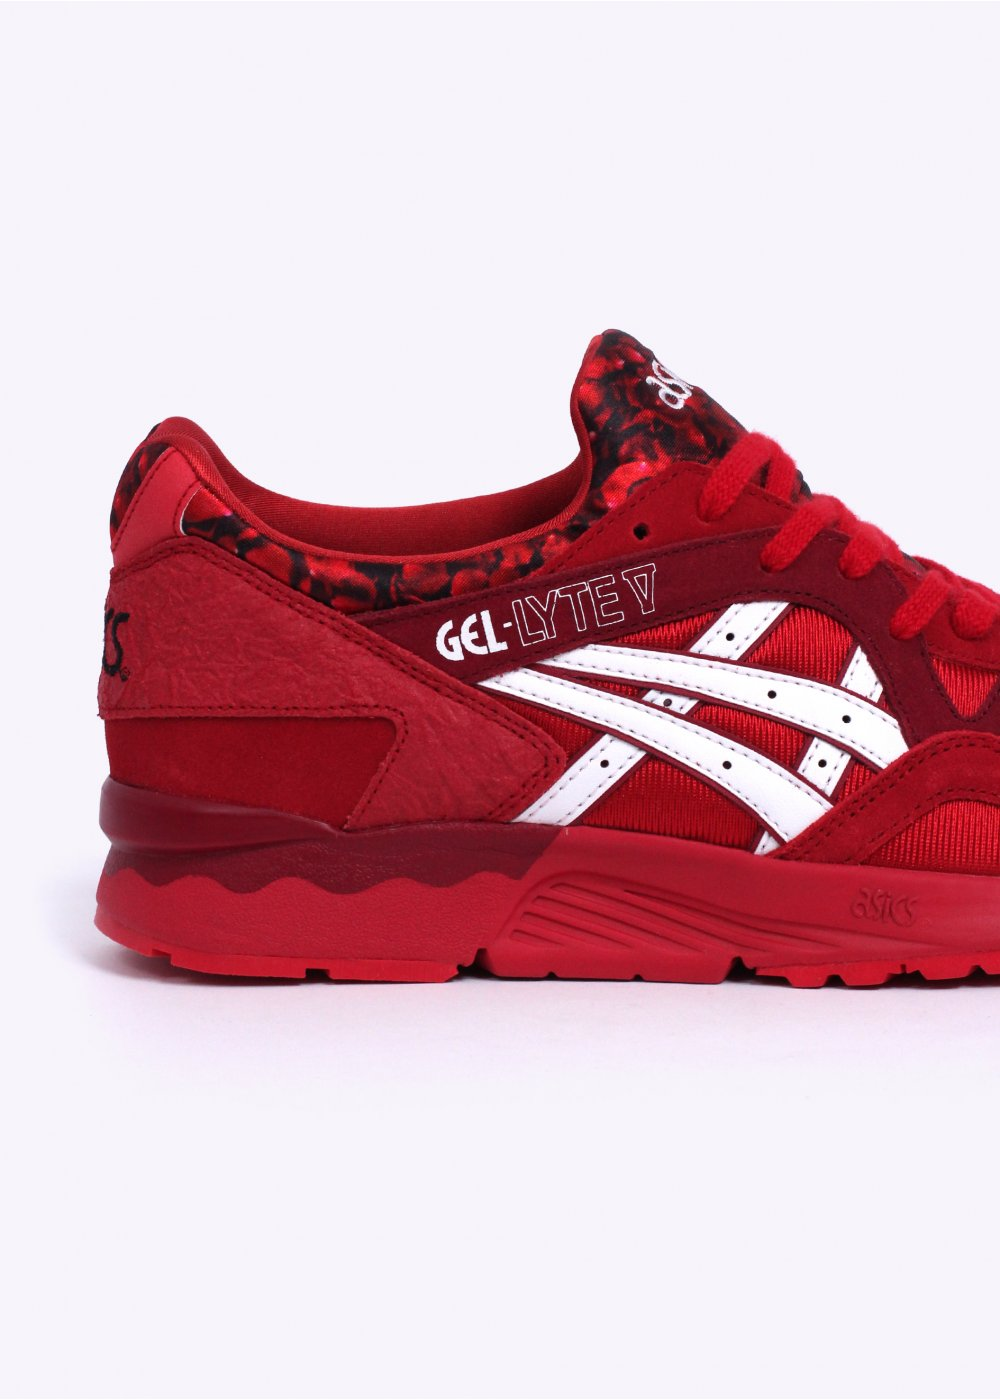 asics gel lyte v red and white